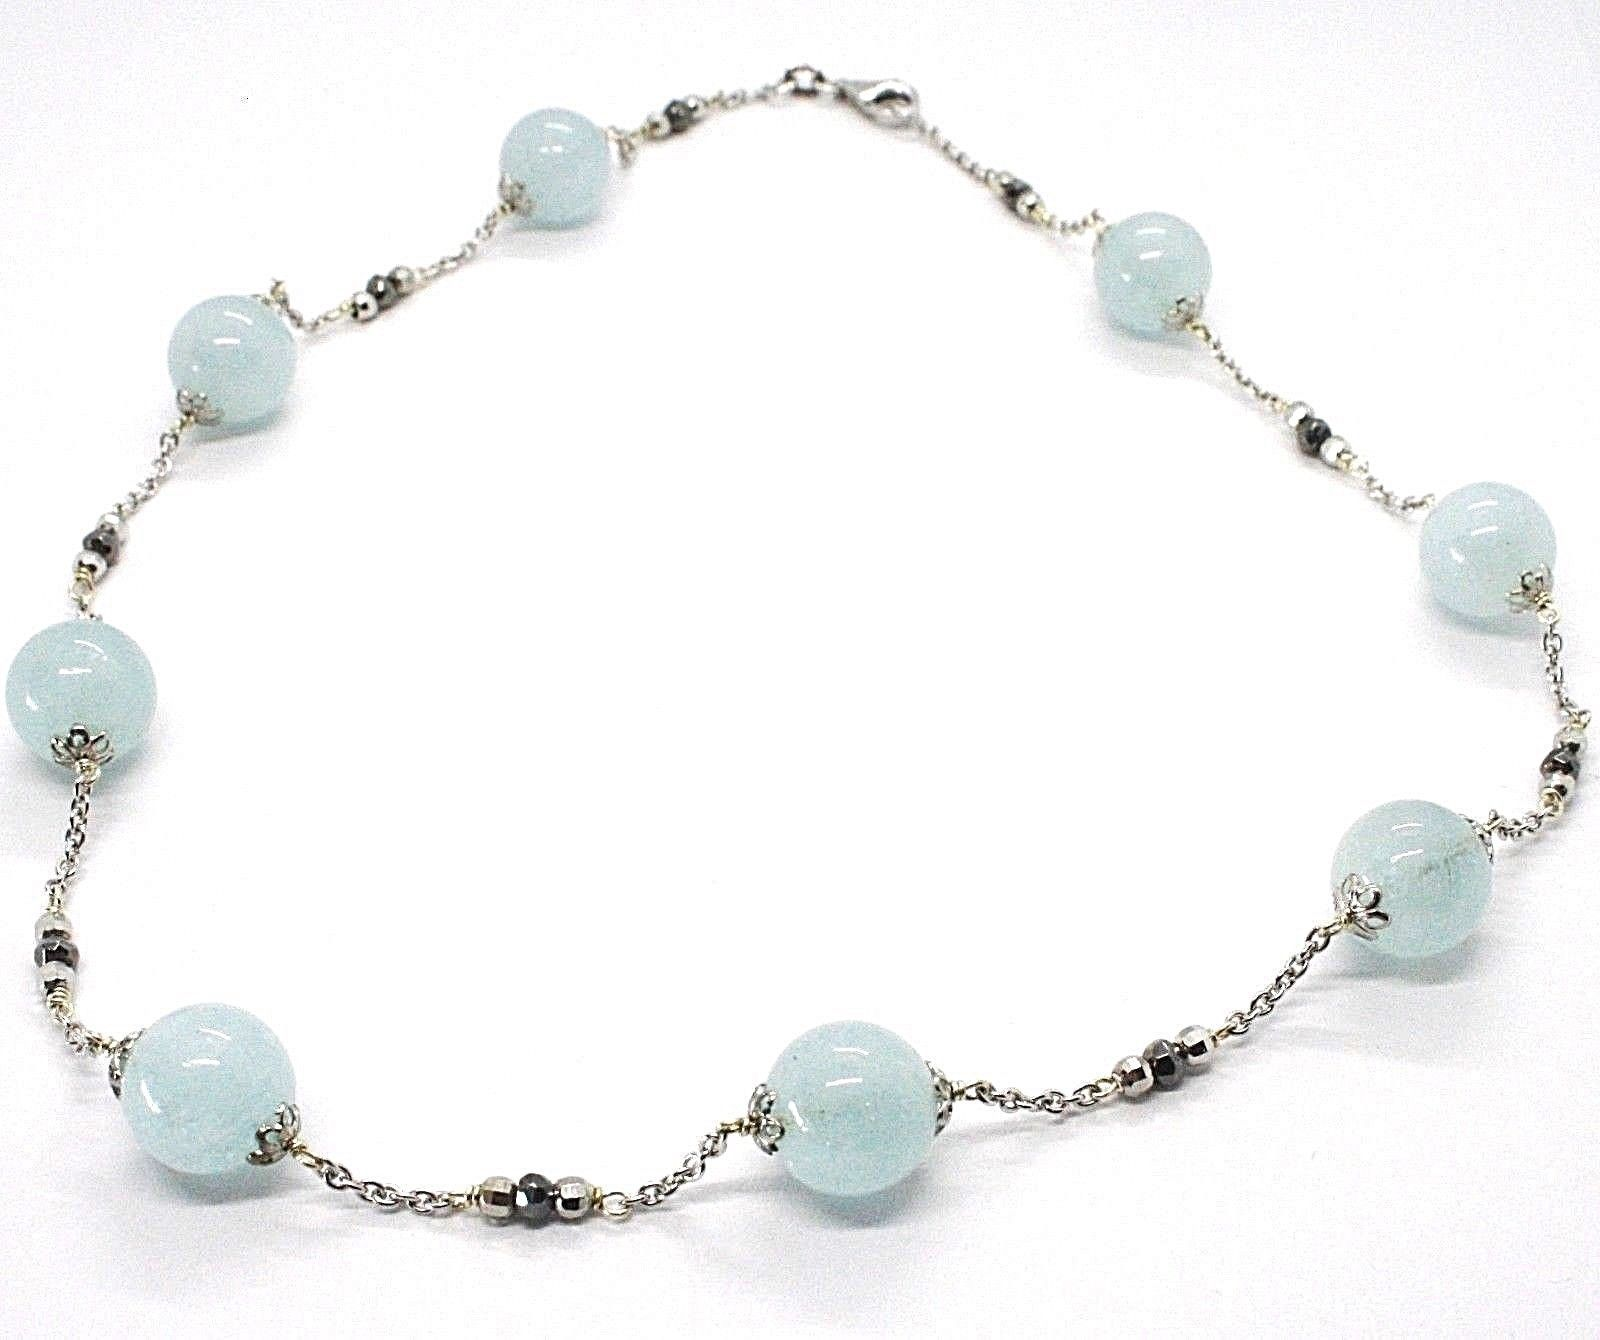 SILVER 925 NECKLACE, AQUAMARINE SPHERES, PIRITE FACETED, CHAIN ROLO'